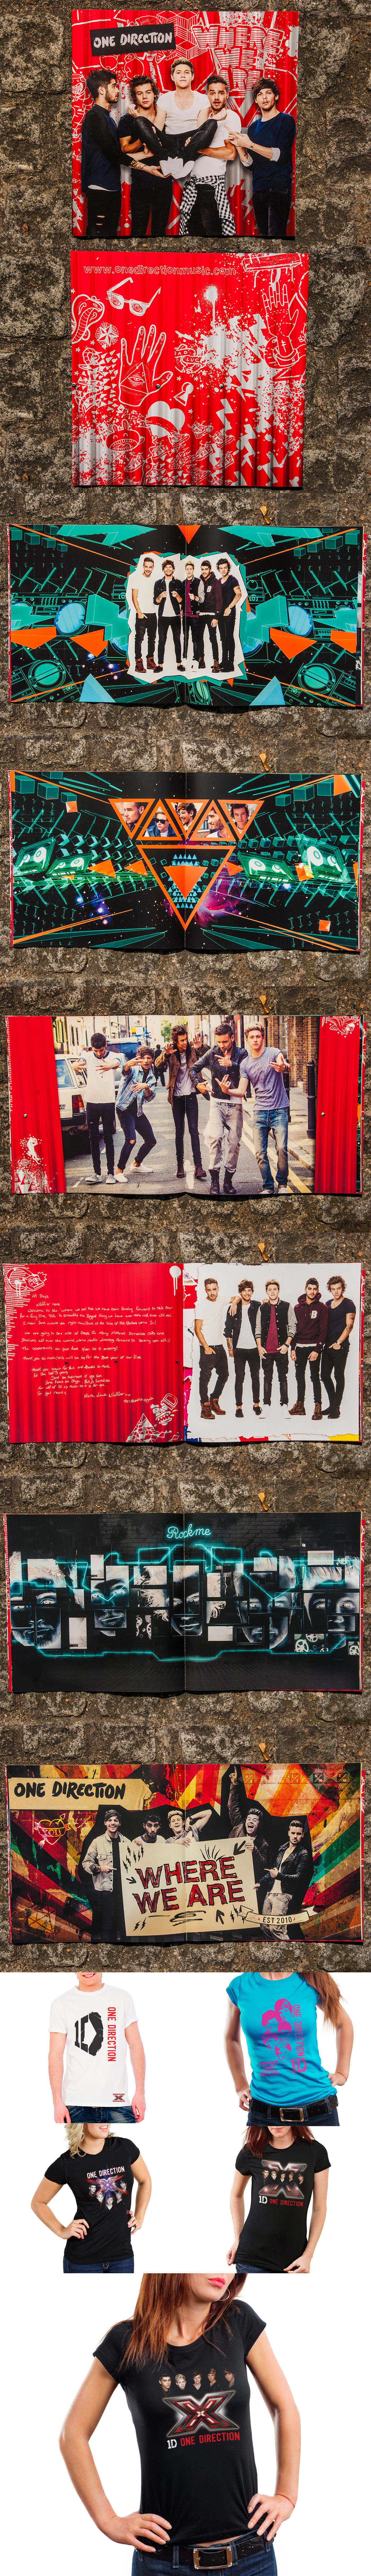 One Direction Tour Programme & Merchandise on Behance